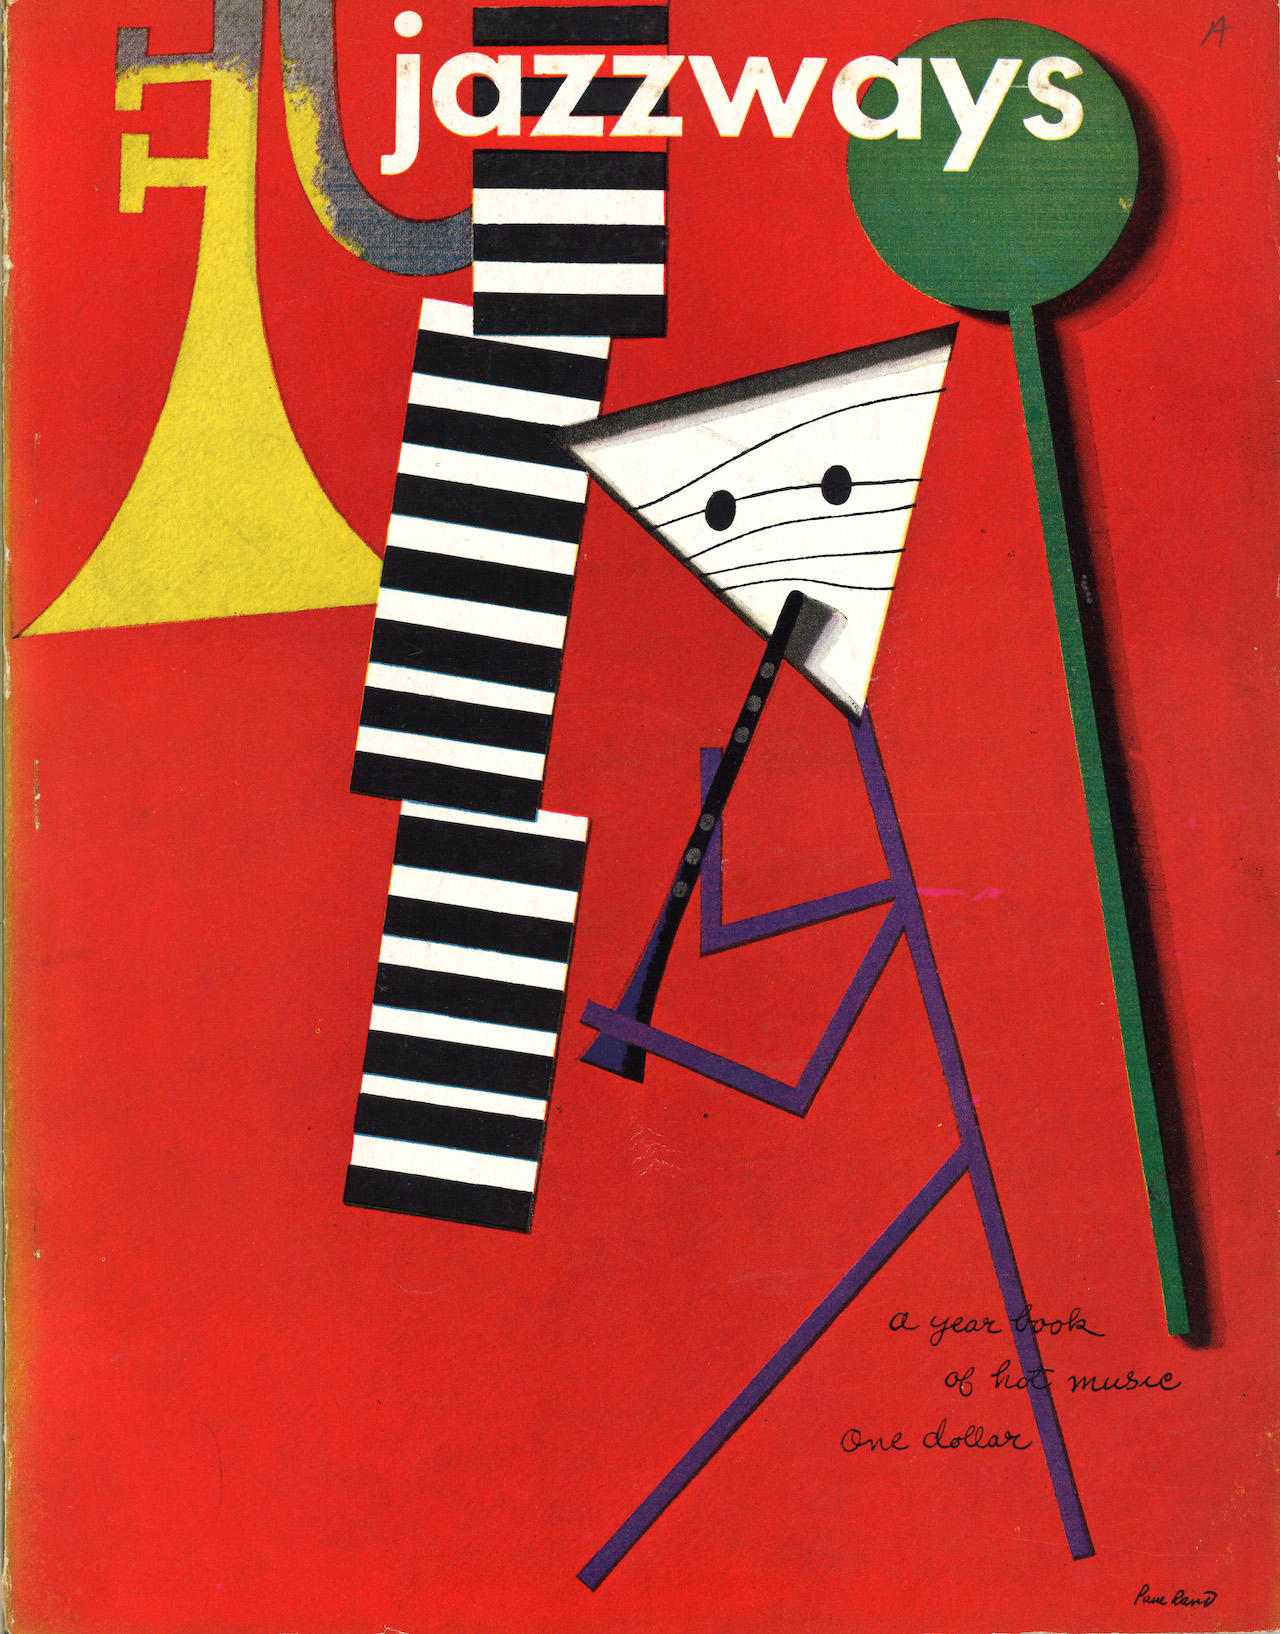 3030_Everything is Design_Paul Rand_Courtesy of Museum of City of NYJazzways magazine1946magazine Private CollectionJazzways magazine, Volume 1, 1946, with cover design by Paul Rand.